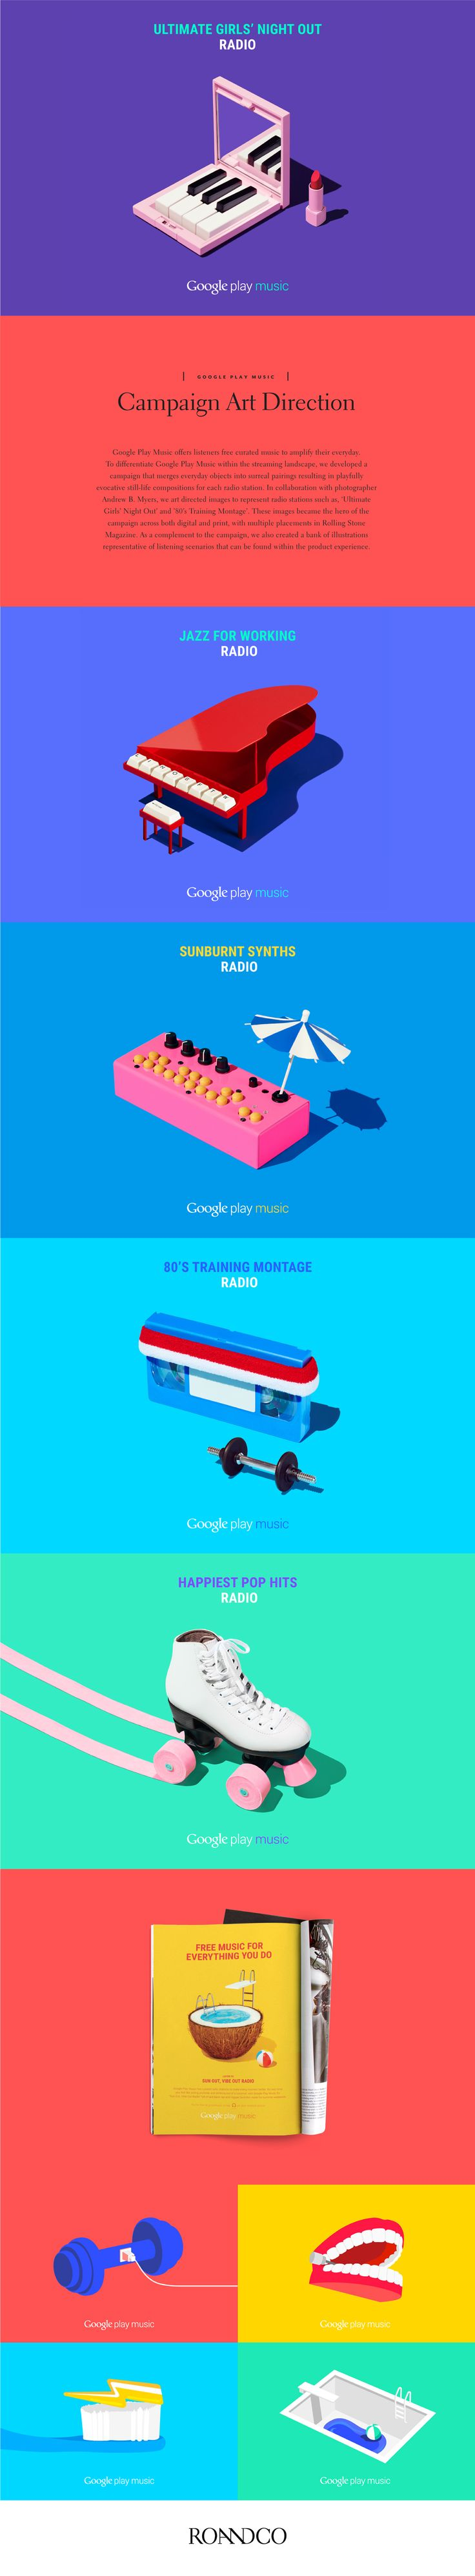 Google Play Music offers listeners free curated music to amplify their everyday. To differentiate Google Play Music within the streaming landscape, we developed a campaign that merges everyday objects into surreal pairings resulting in playfully evocat…